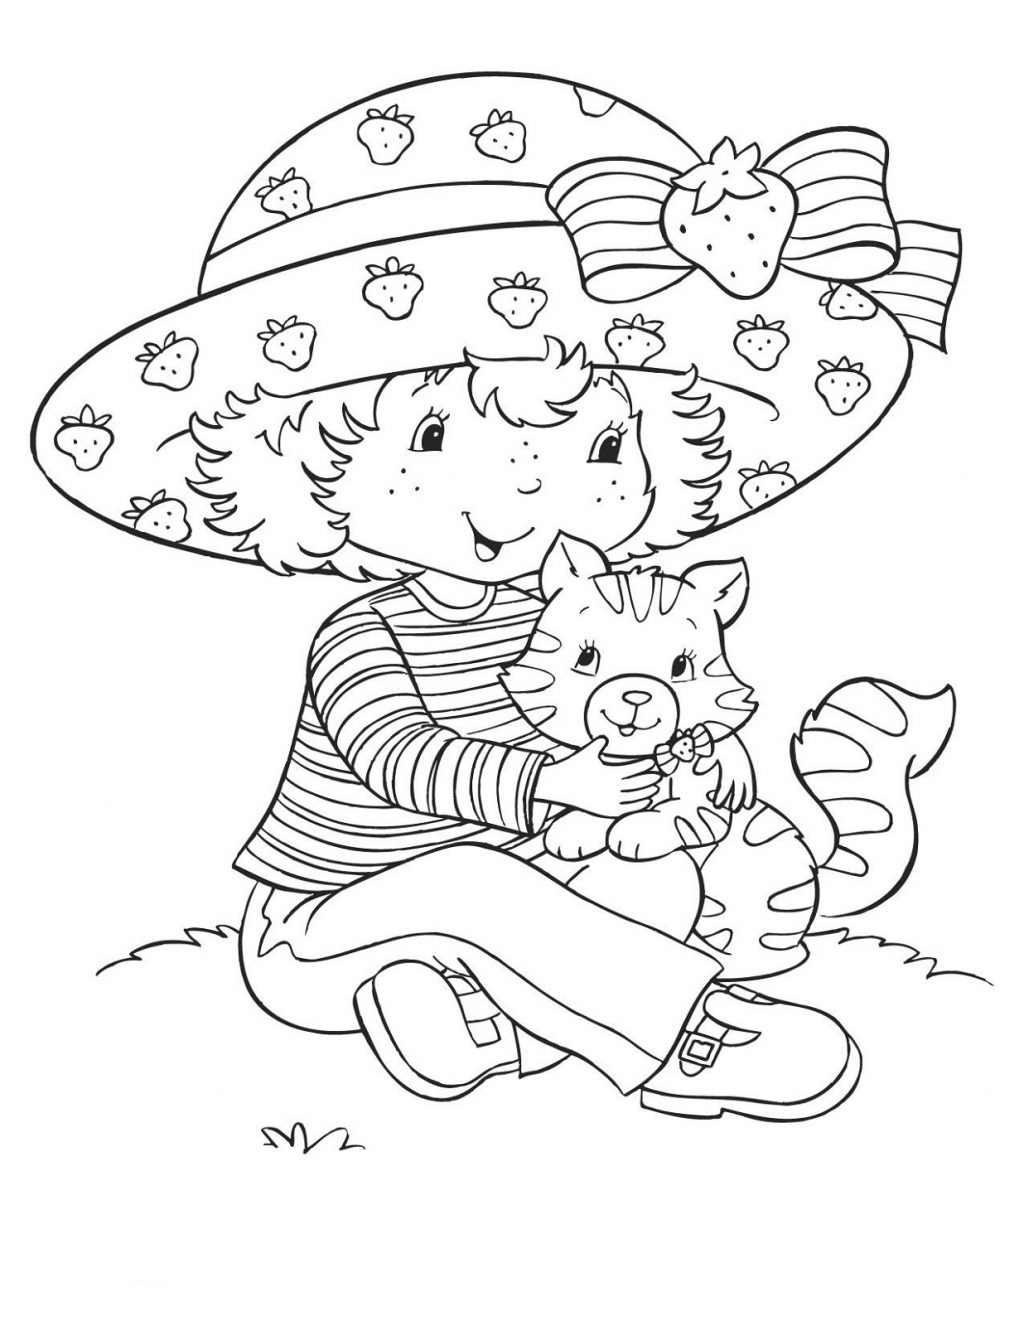 Coloring Pages ~ Coloring Pageserry Shortcake For Kids Learning - Strawberry Shortcake Coloring Pages Free Printable